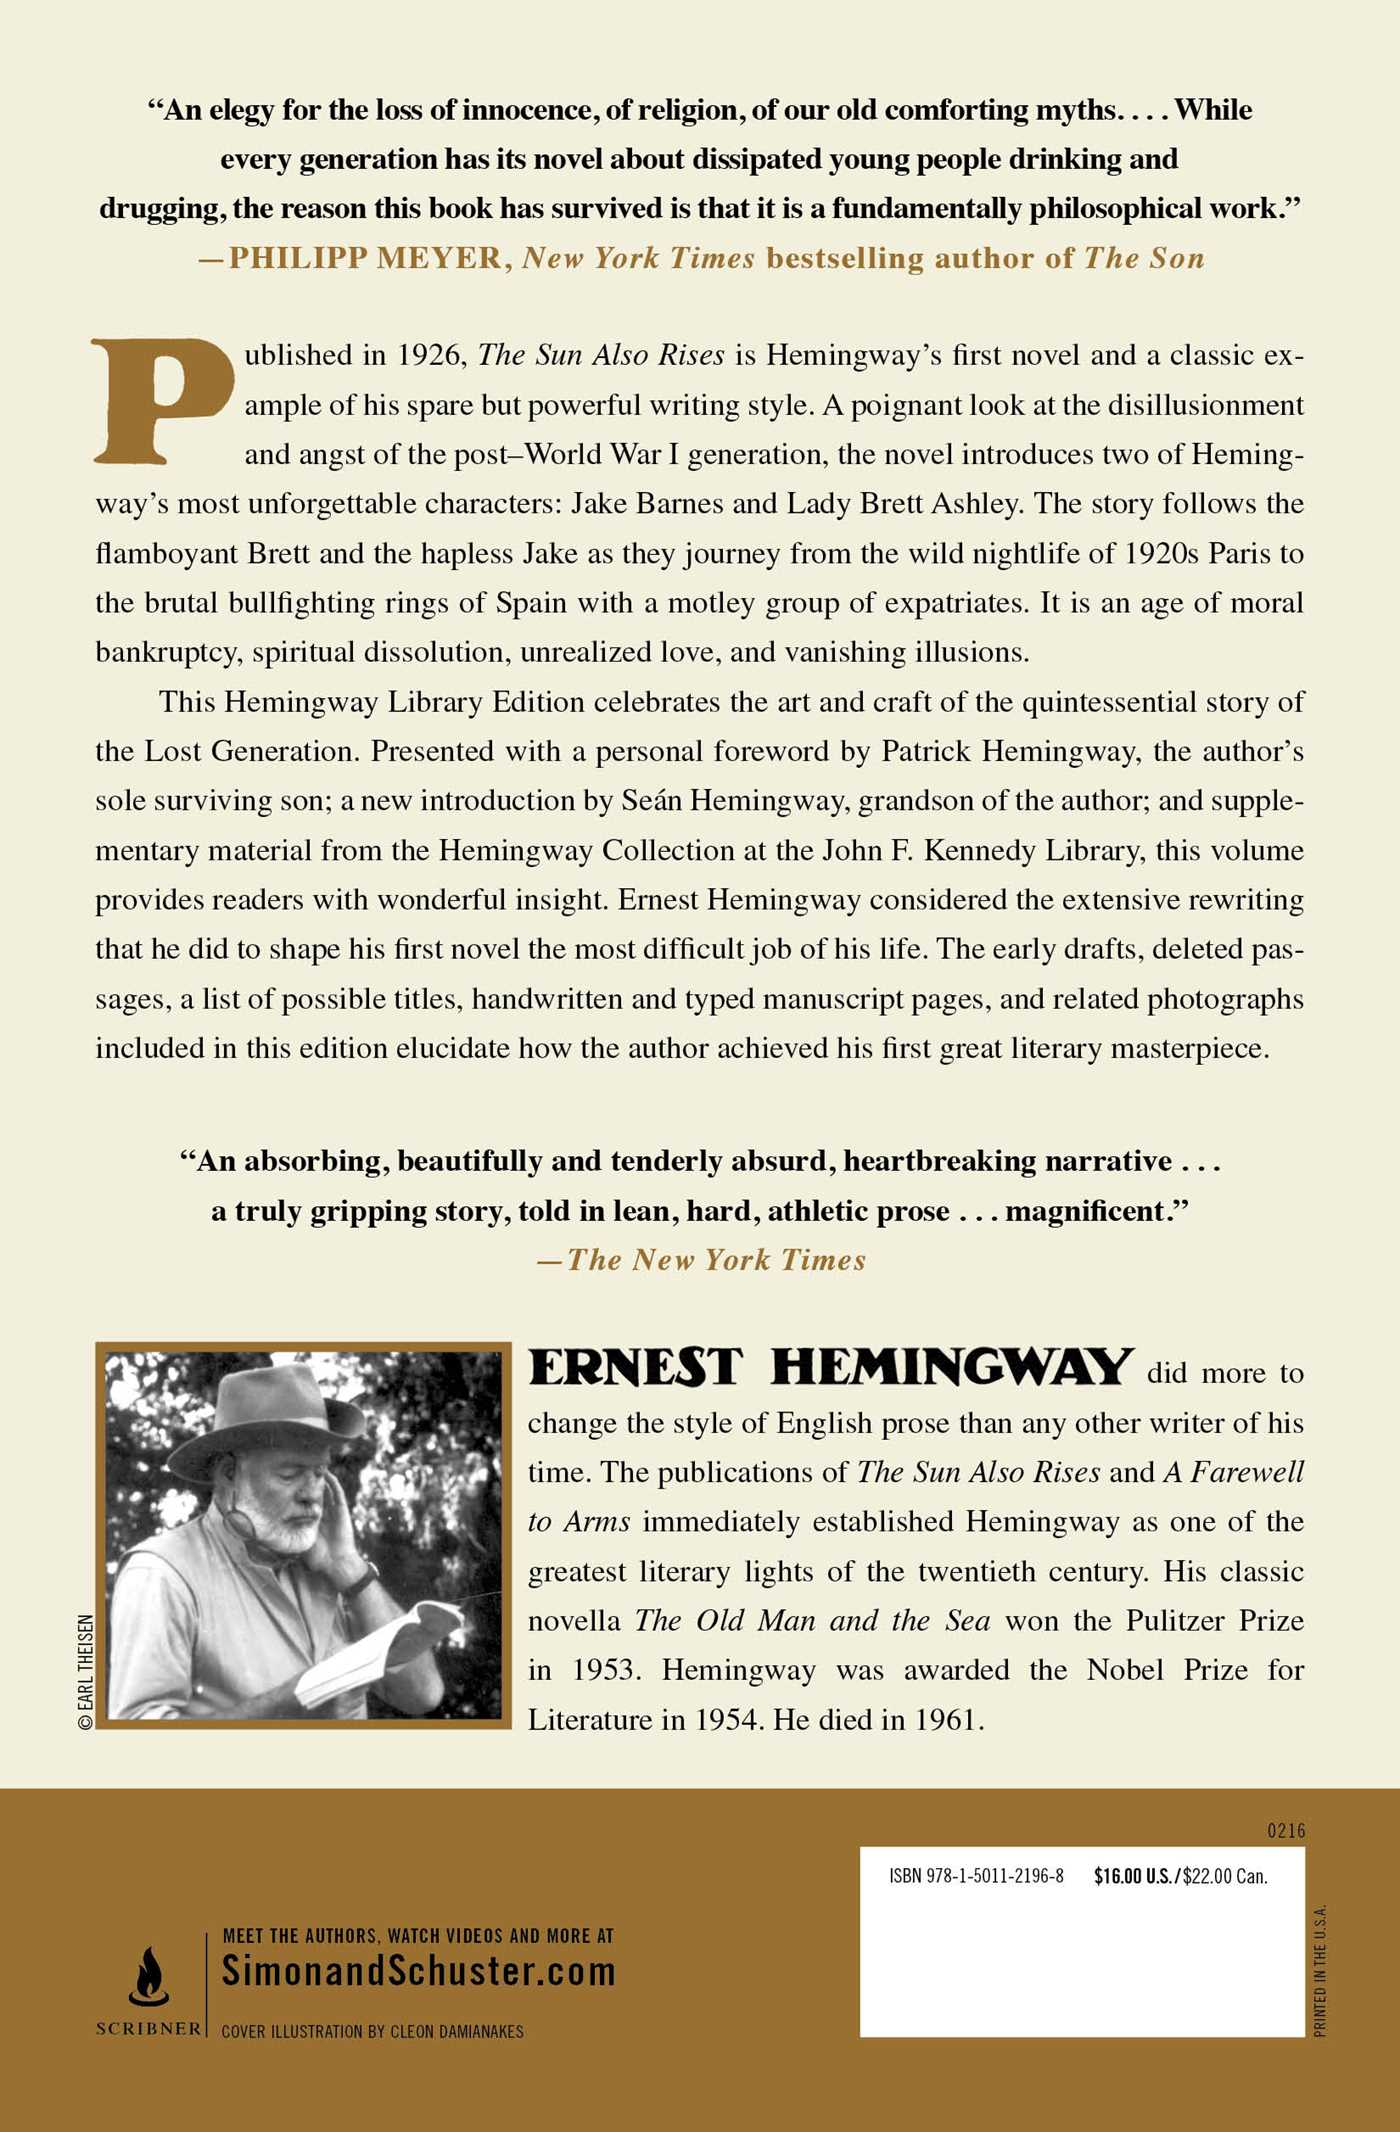 the sun also rises essay introduction Essay in the novel the sun also rises , written by ernest hemingway the main character makes a decision to introduce the woman he loves to a young bull fighter.